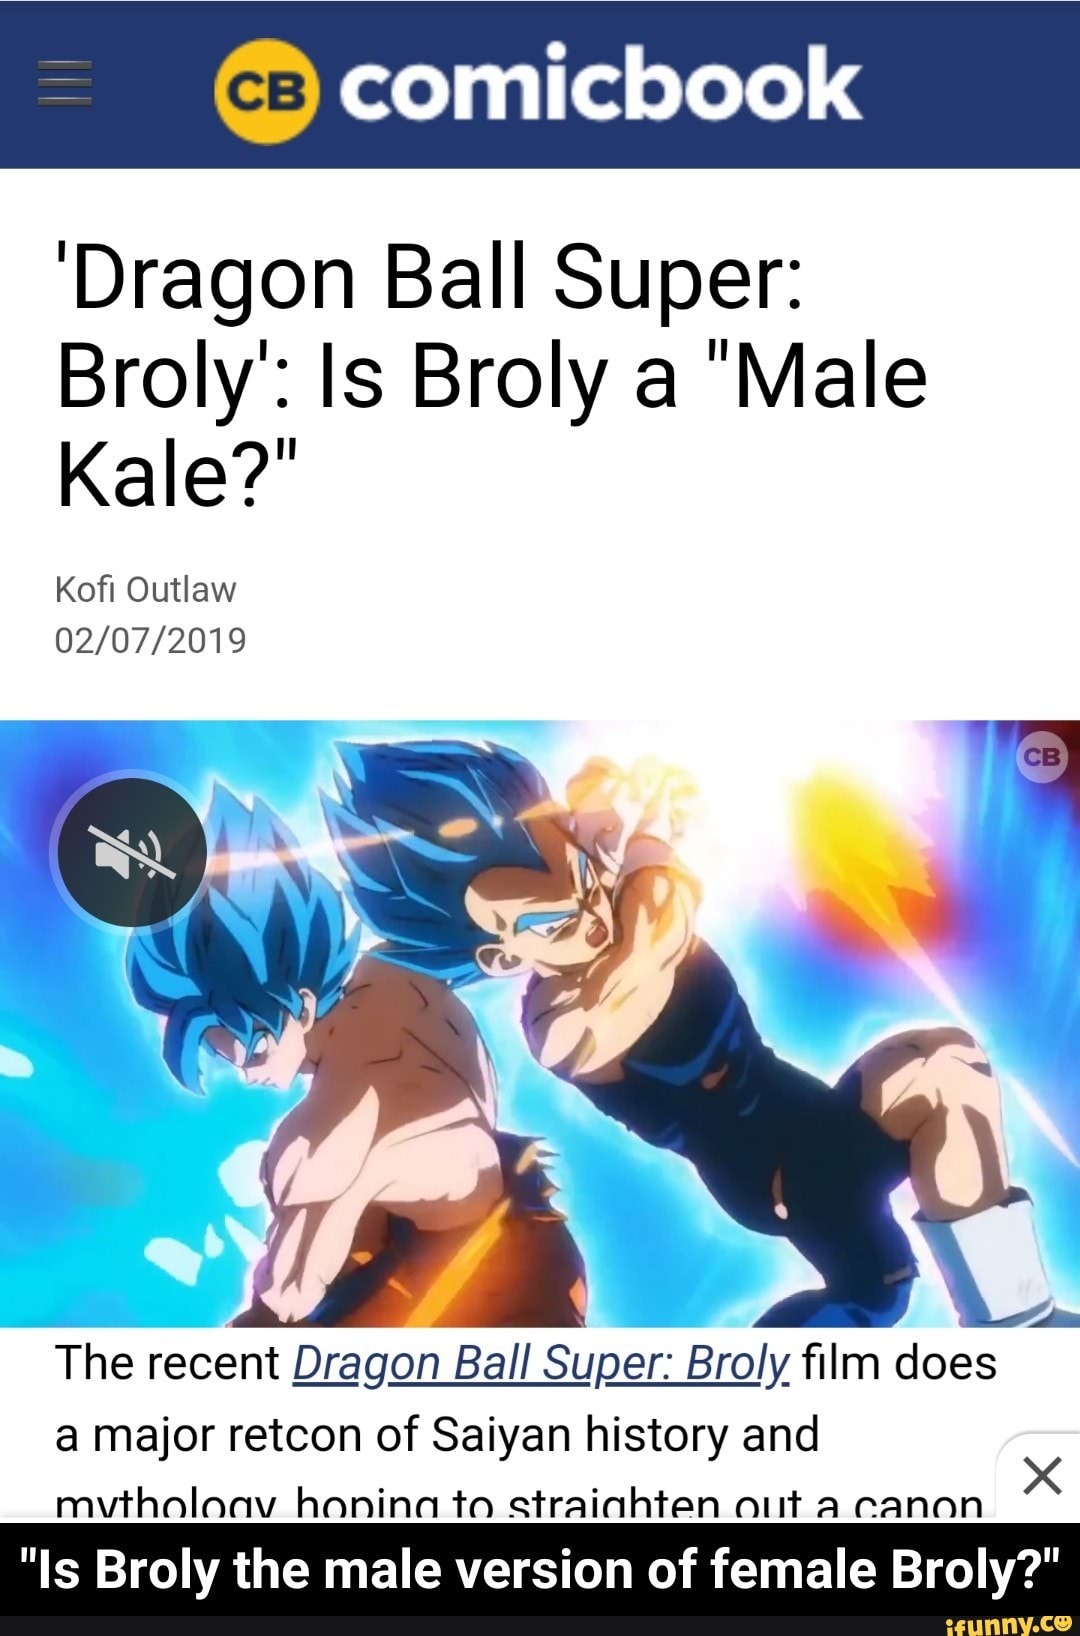 Dragon Ball Super Broly Is Broly A Male Kale Kofl Outlaw 02 07